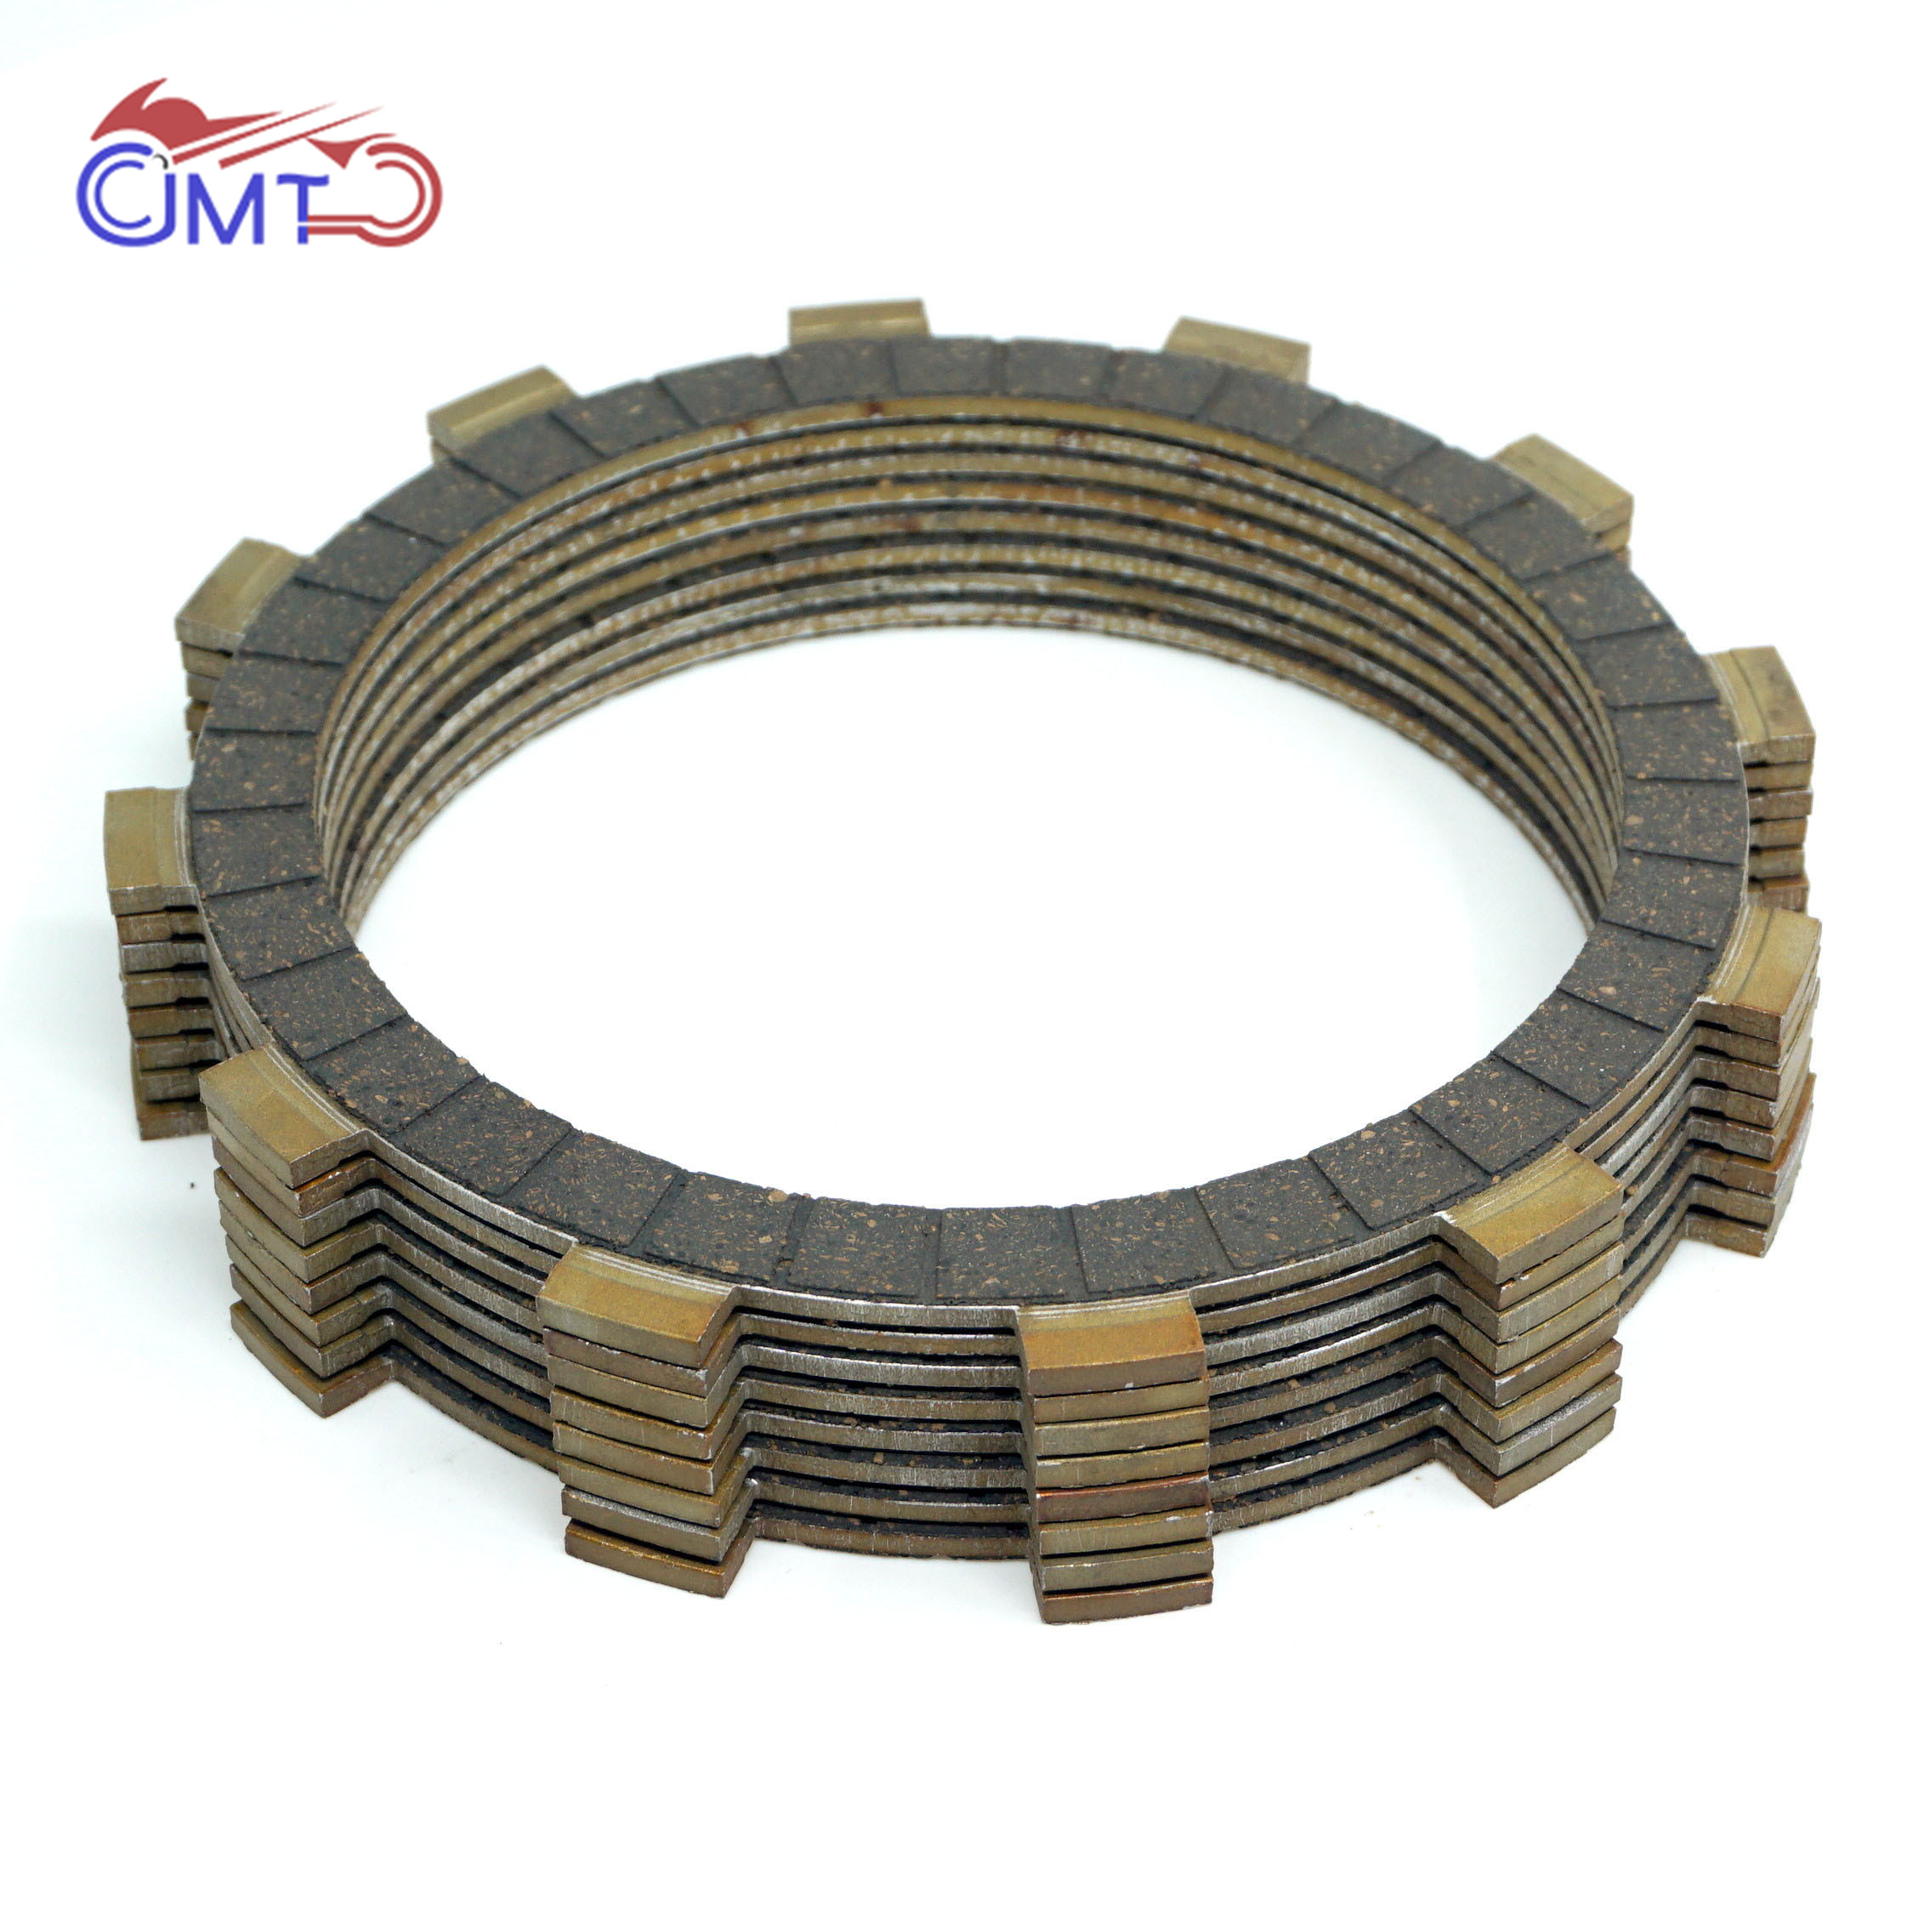 For Yamaha XJ700 XJ700X Maxim X 1985 1986 FZ750 Genesis 1985 XJ750 1983 XJ750R Seca 750 Clutch Friction Disc Plate Kit 8P SetFor Yamaha XJ700 XJ700X Maxim X 1985 1986 FZ750 Genesis 1985 XJ750 1983 XJ750R Seca 750 Clutch Friction Disc Plate Kit 8P Set